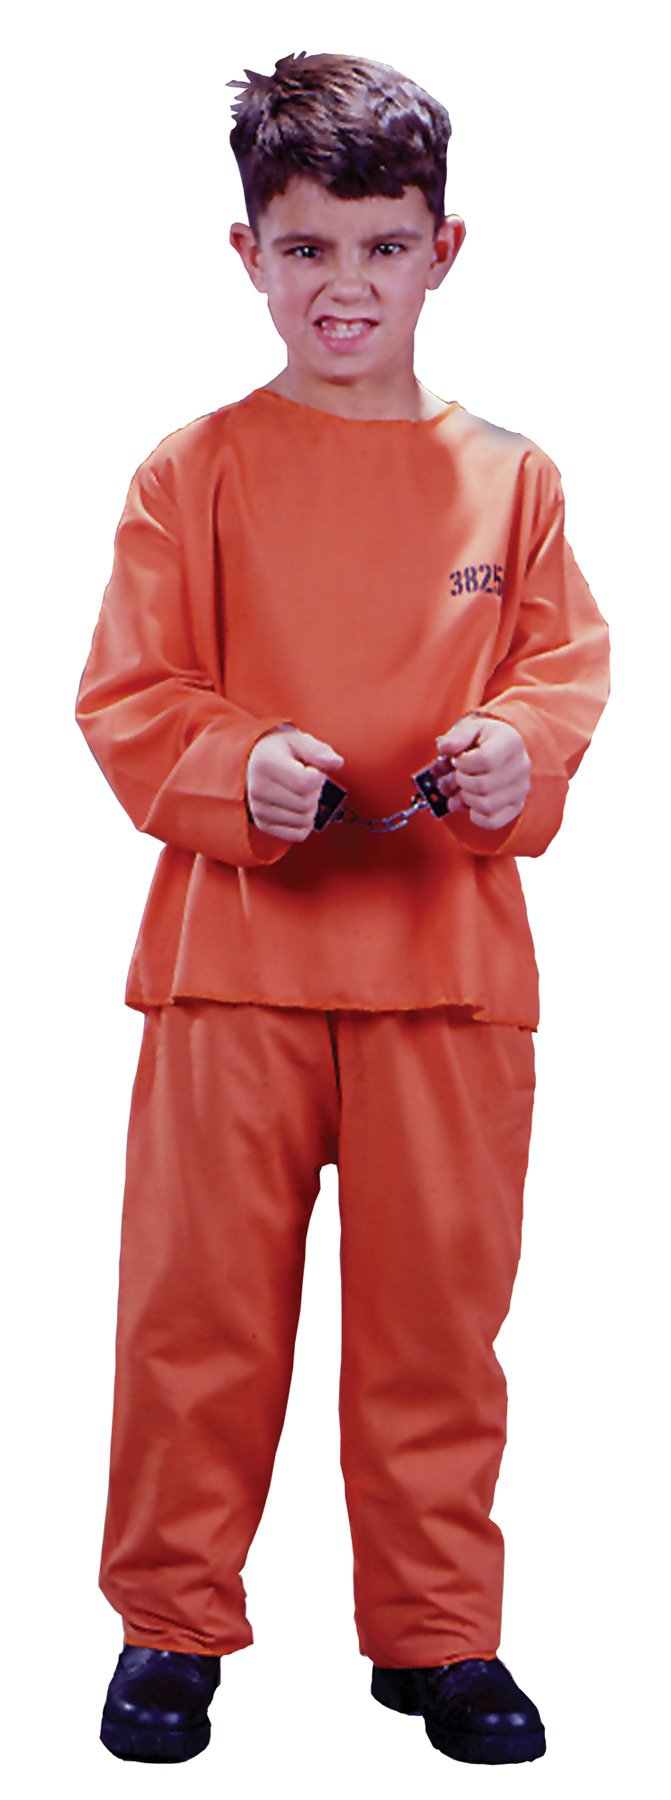 Got Busted Boys Costume Small